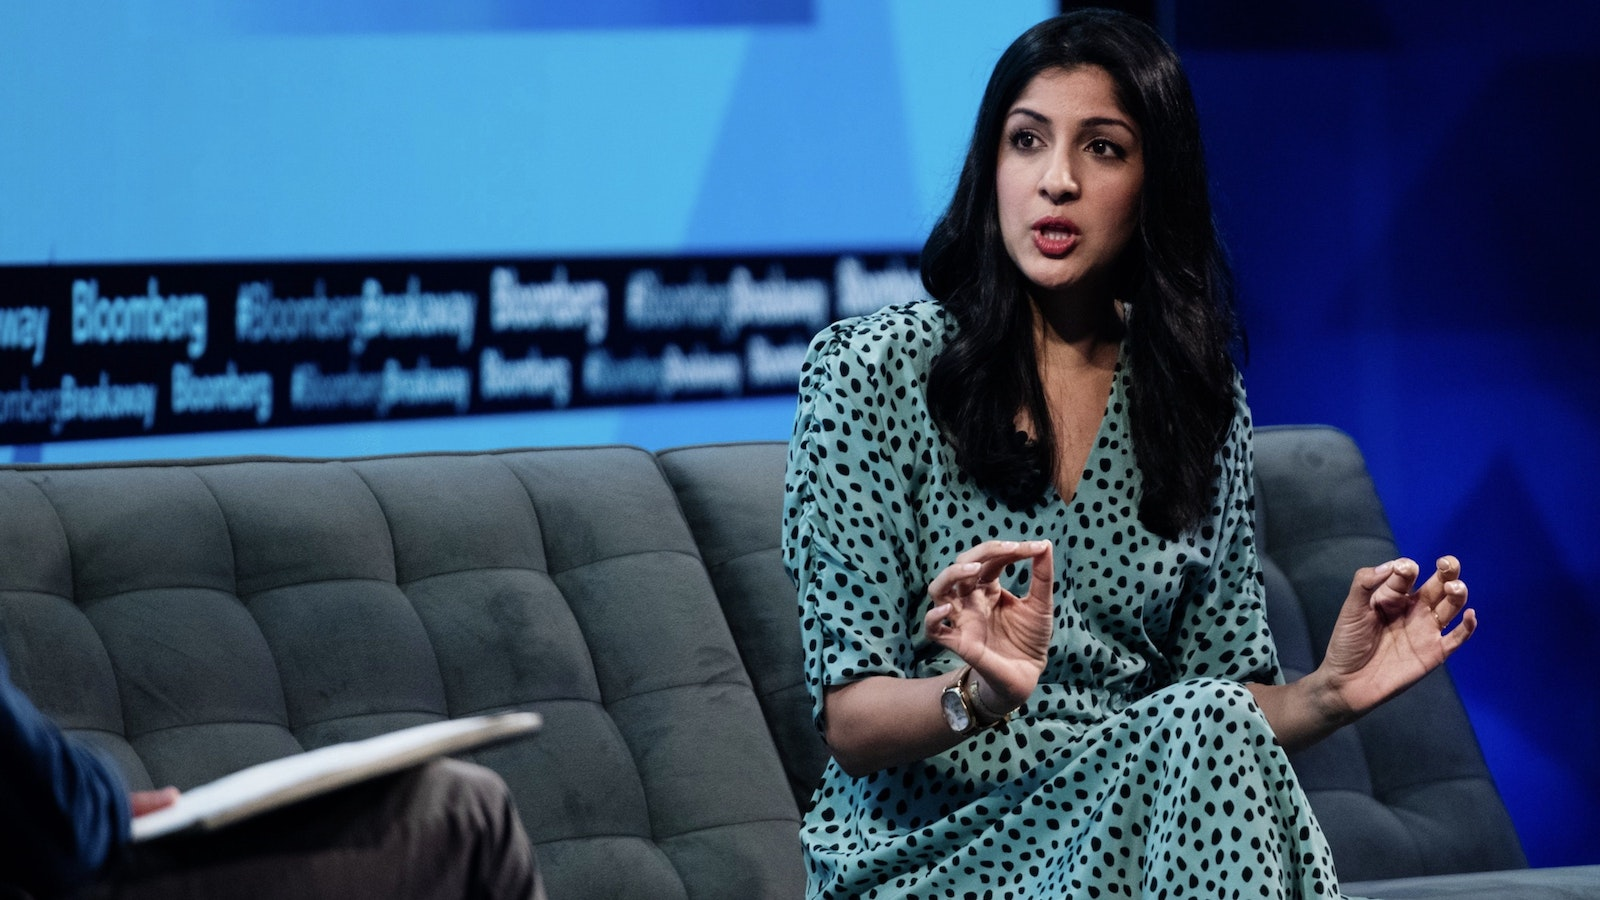 Vimeo CEO Anjali Sud. Photo by Bloomberg